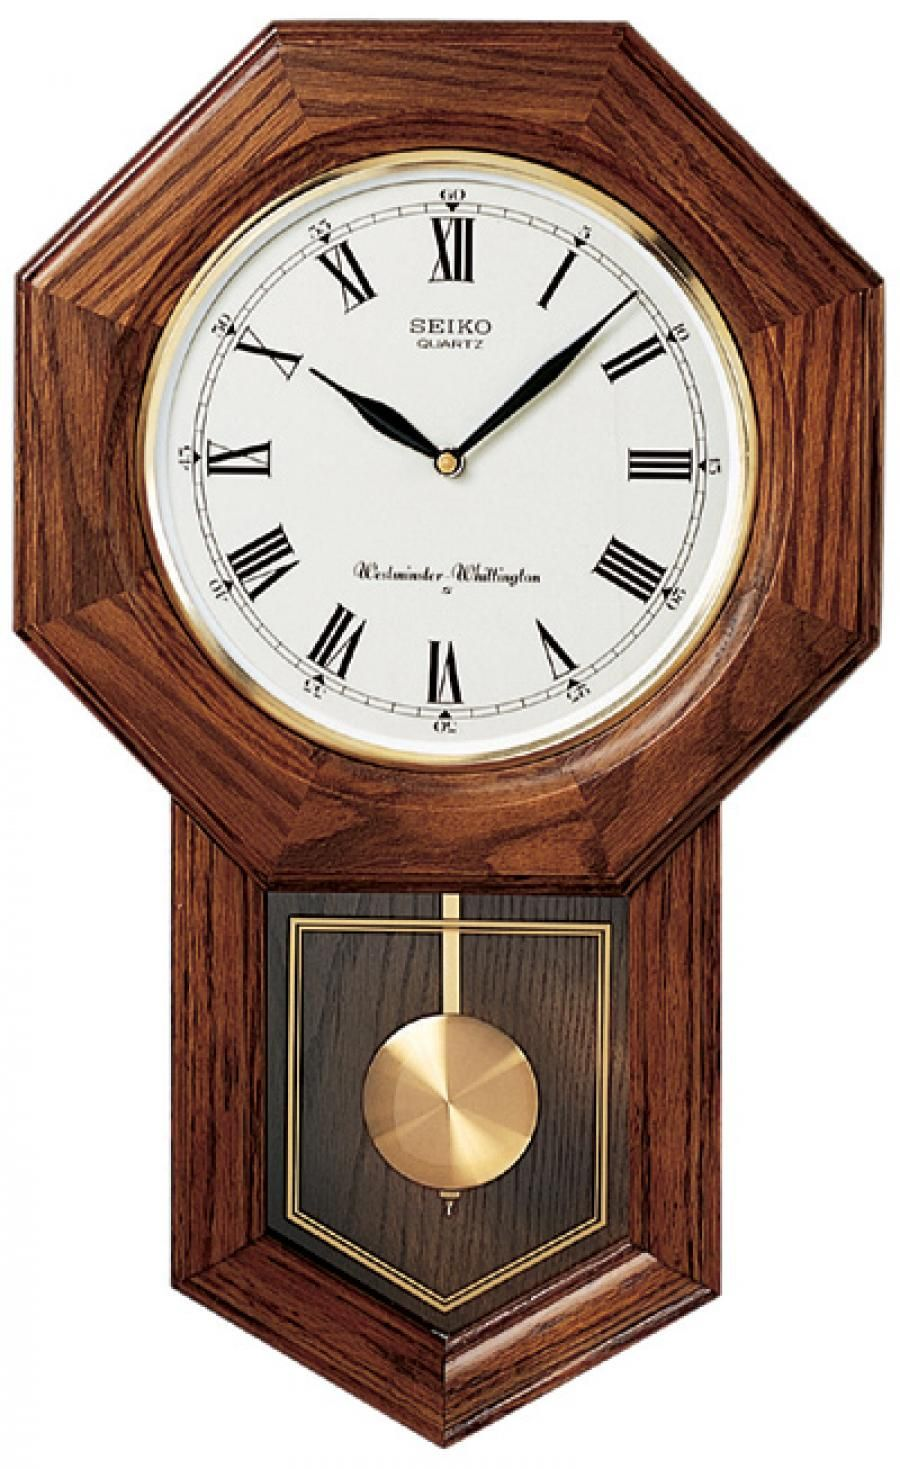 Wooden Wall Clocks Seiko Curved Wooden Wall Clock Wall Clock Seiko Clock Wall Clock